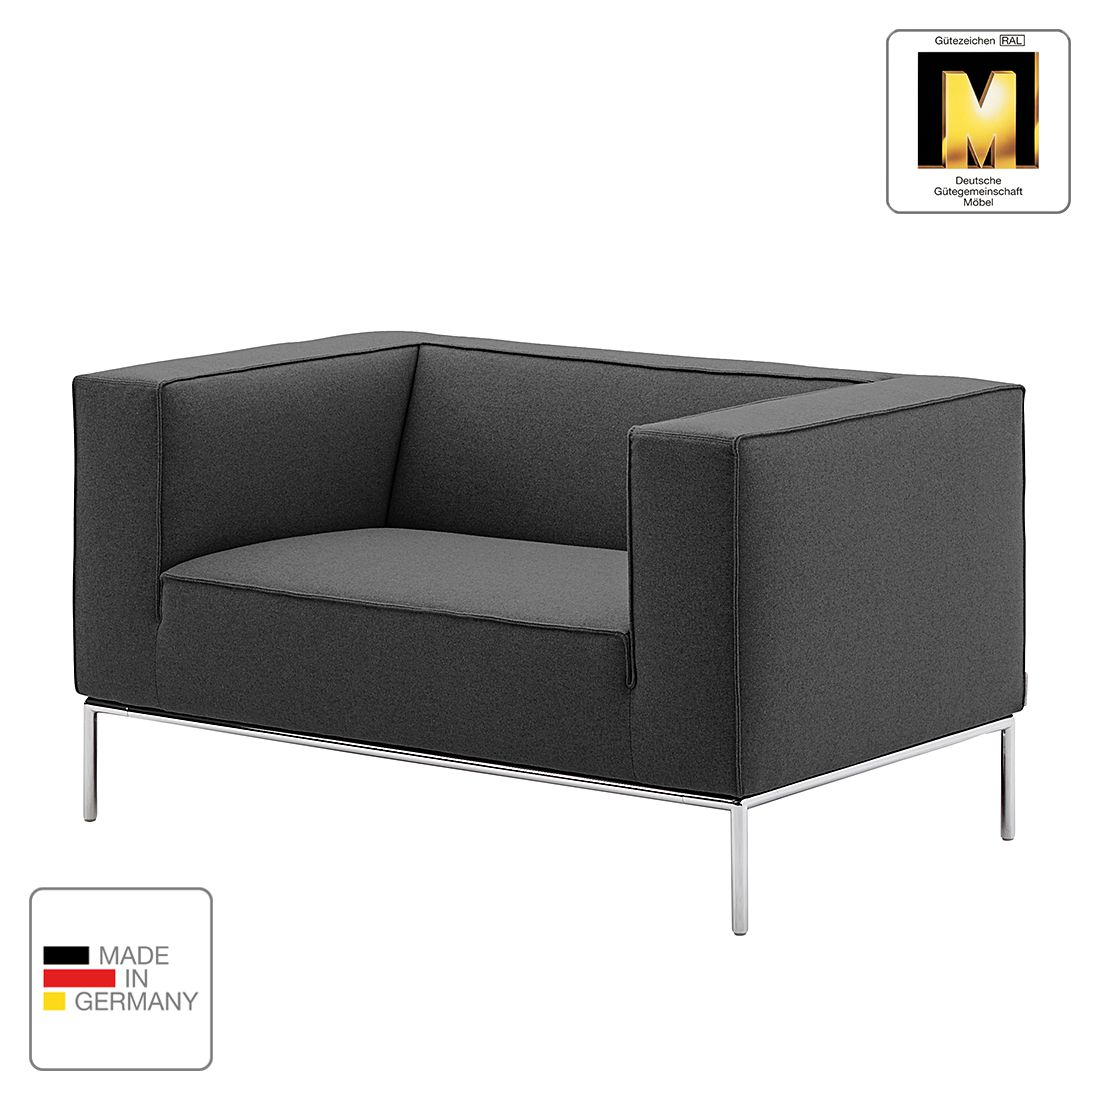 sessel greg webstoff anthrazit ohne kissen machalke polsterwerkst tten g nstig online kaufen. Black Bedroom Furniture Sets. Home Design Ideas